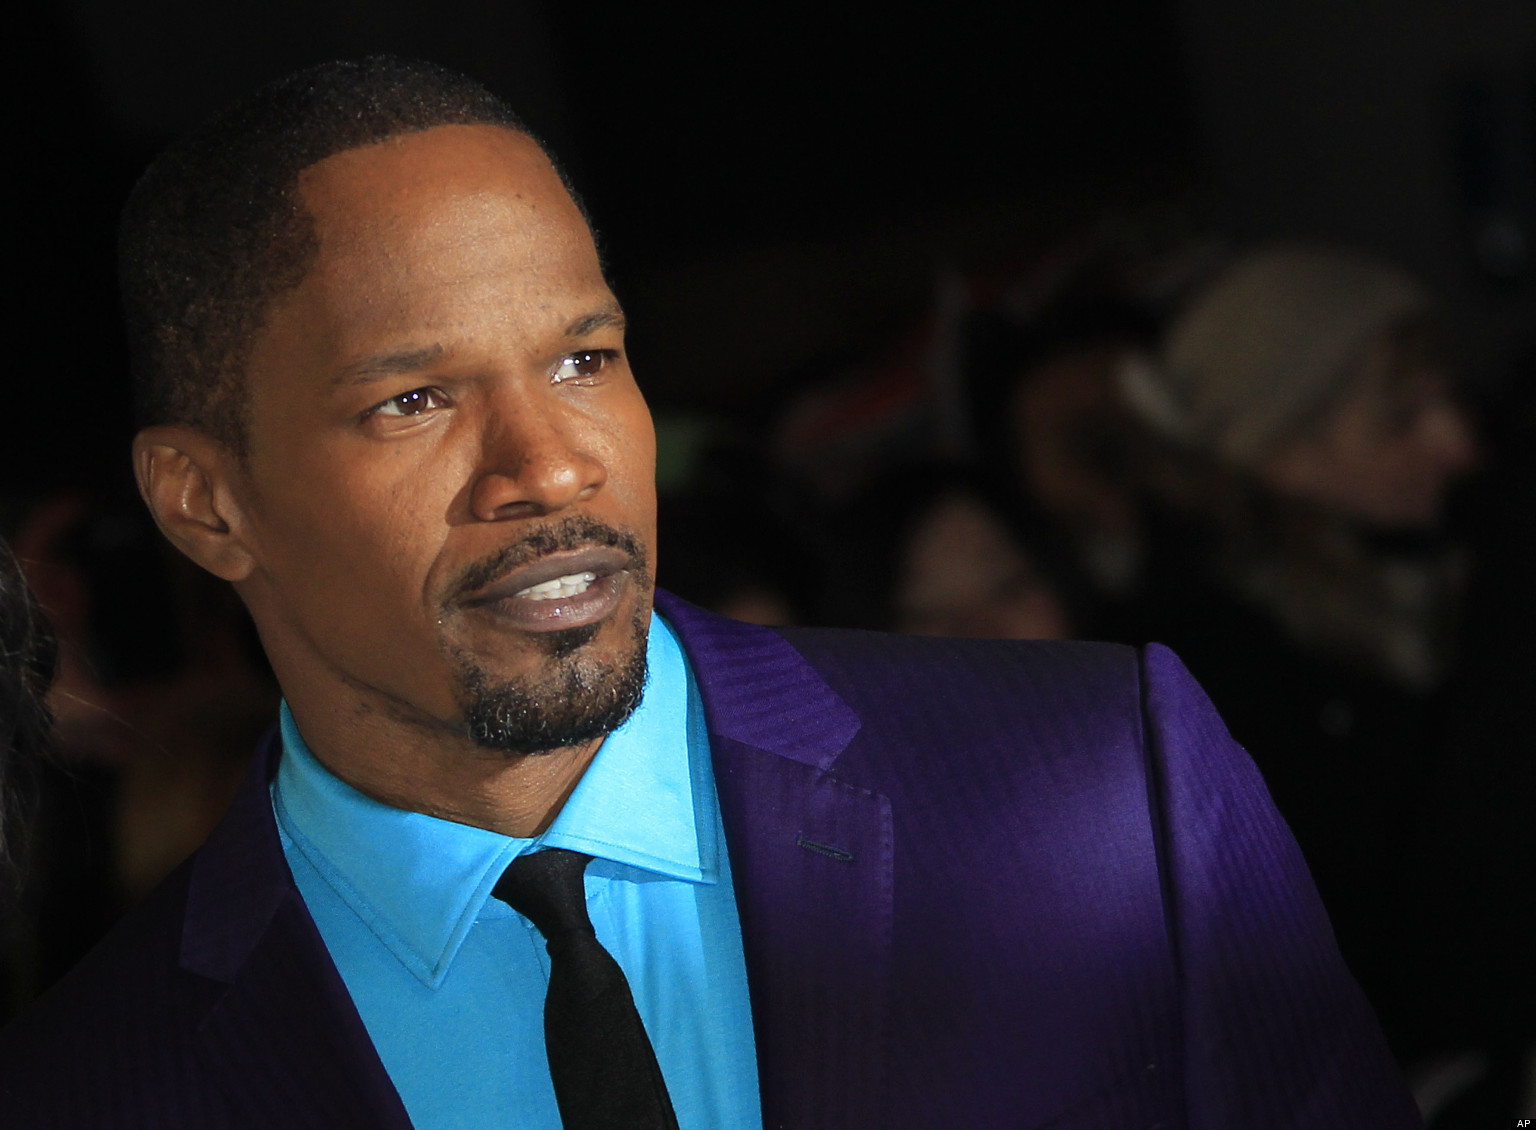 Hilarant : L'incroyable imitation de Doc Rivers par Jamie Foxx